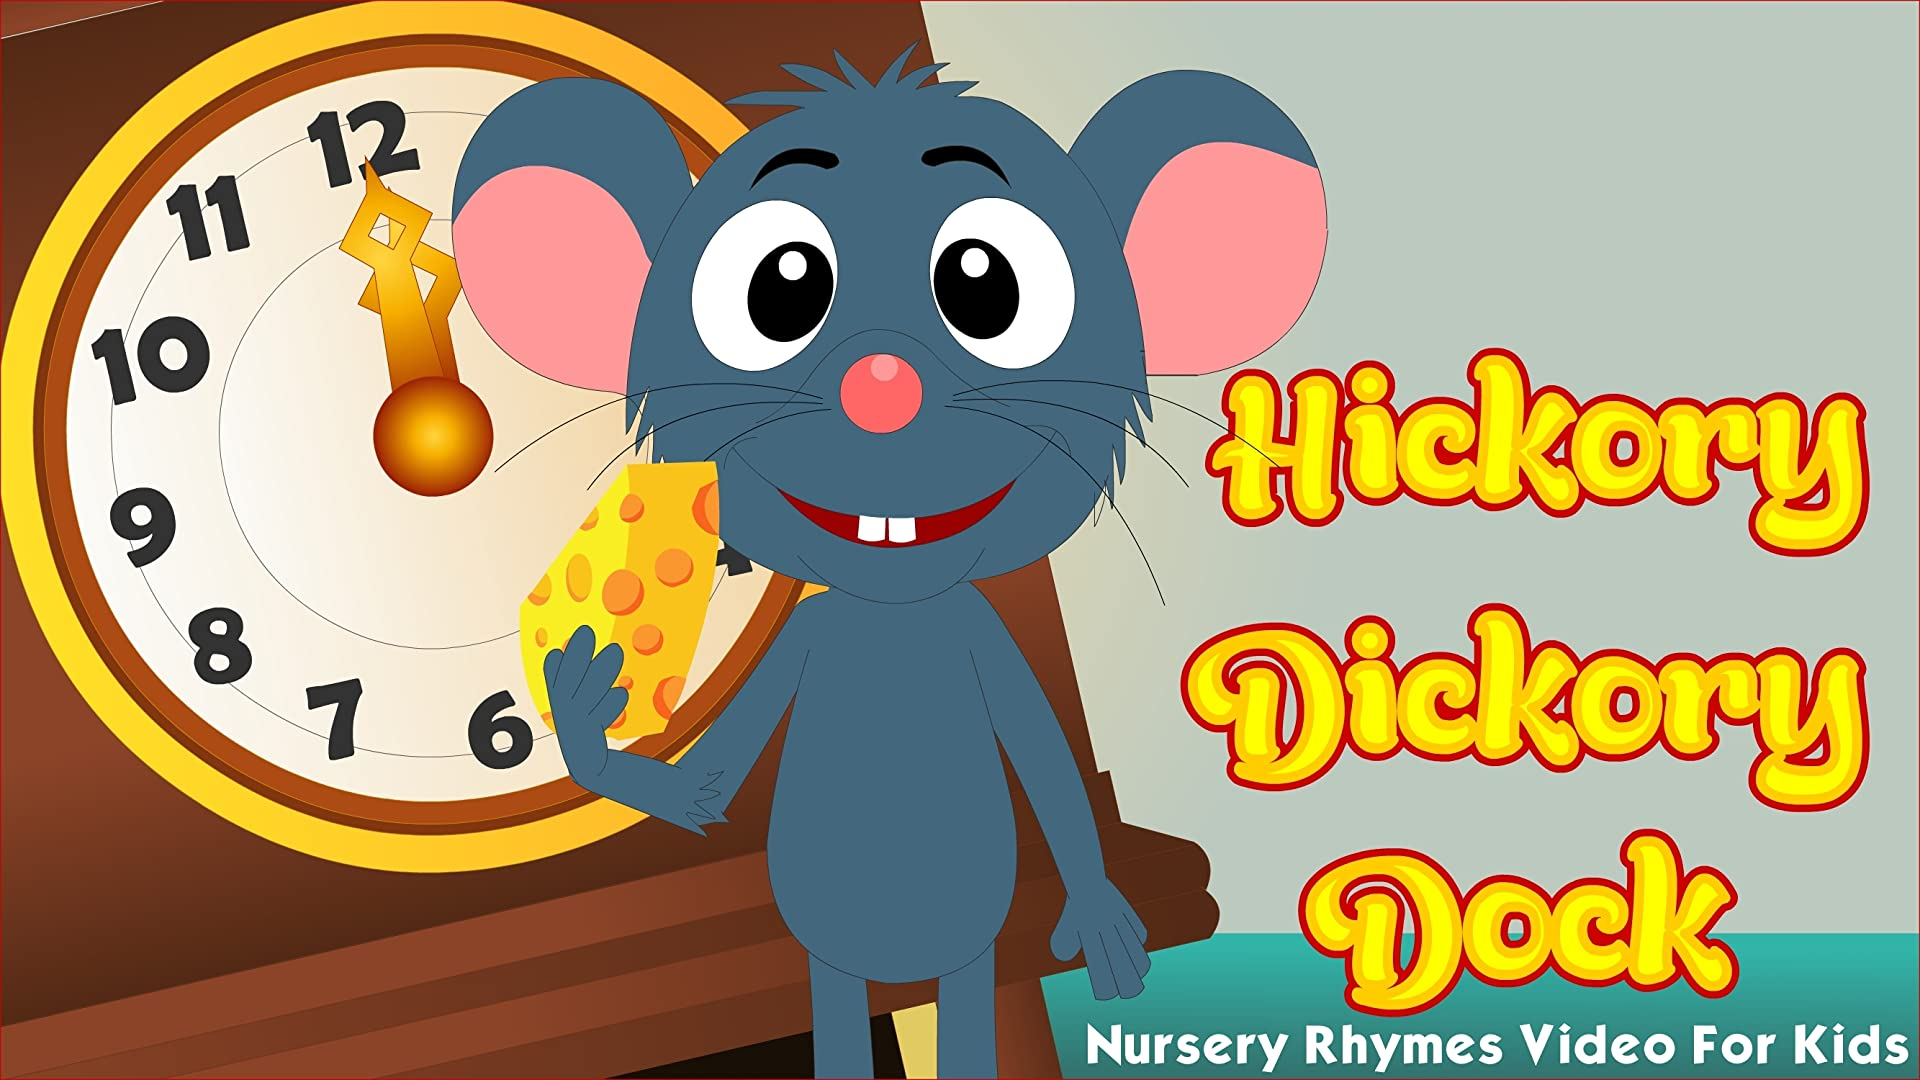 Hickory Dickory Dock - Nursery Rhymes Video For Kids